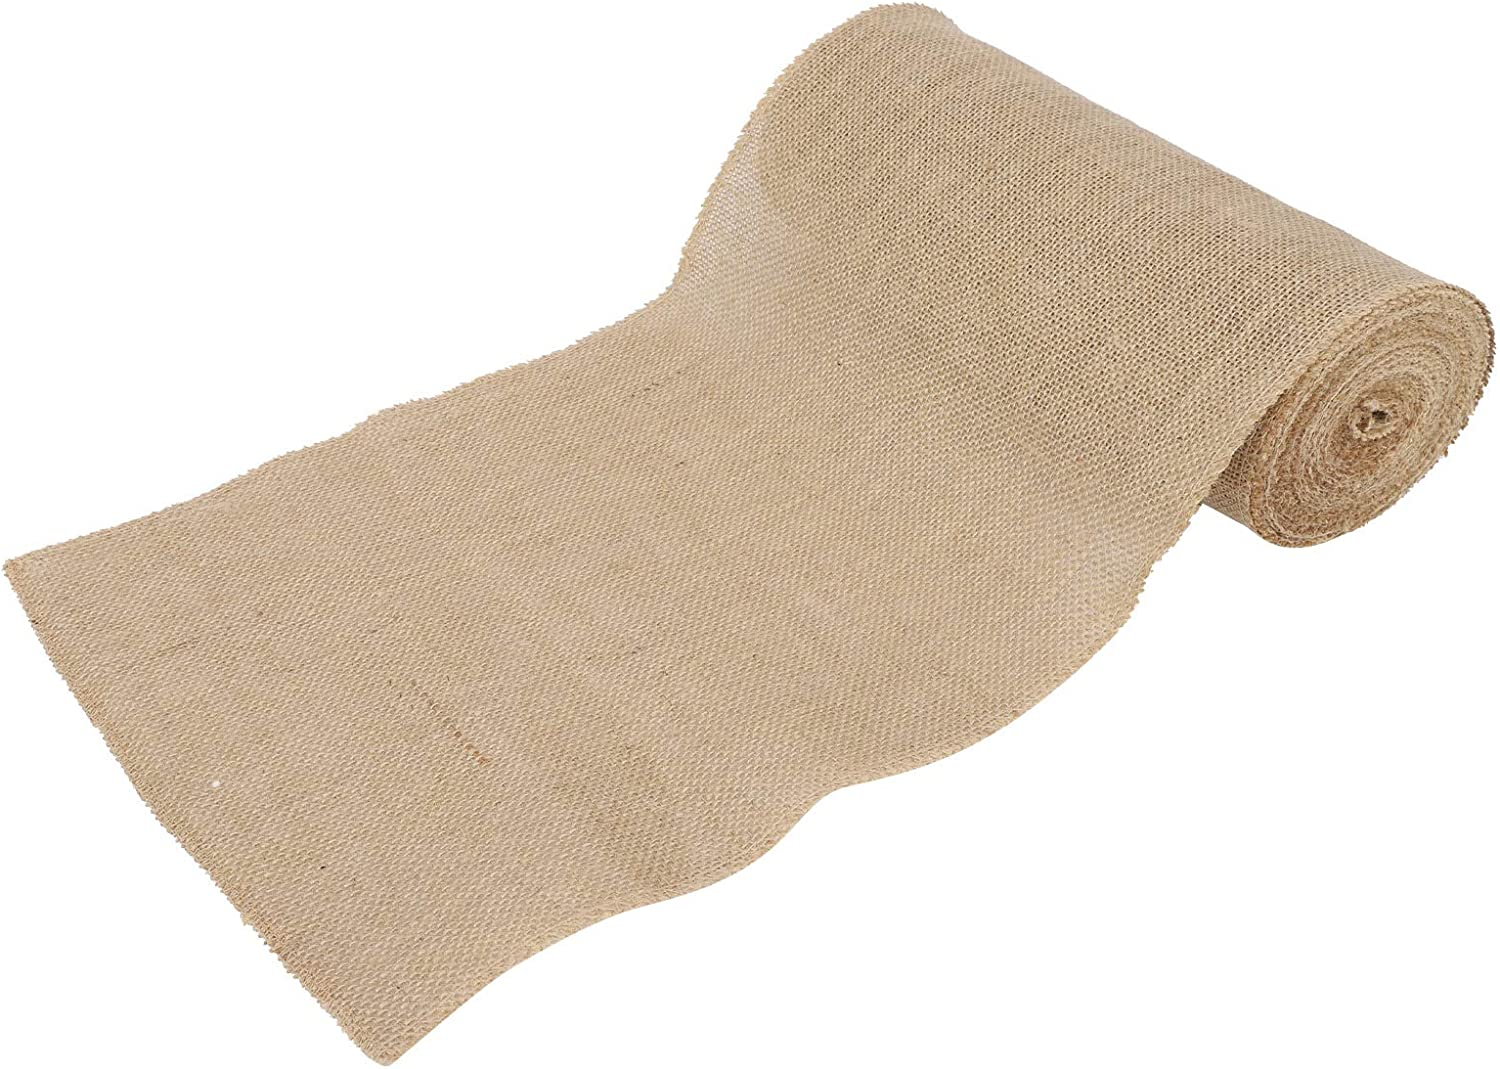 sale Baltimore Mall Pinsofy DIY Burlap Roll Meaningful Delicate Stylish